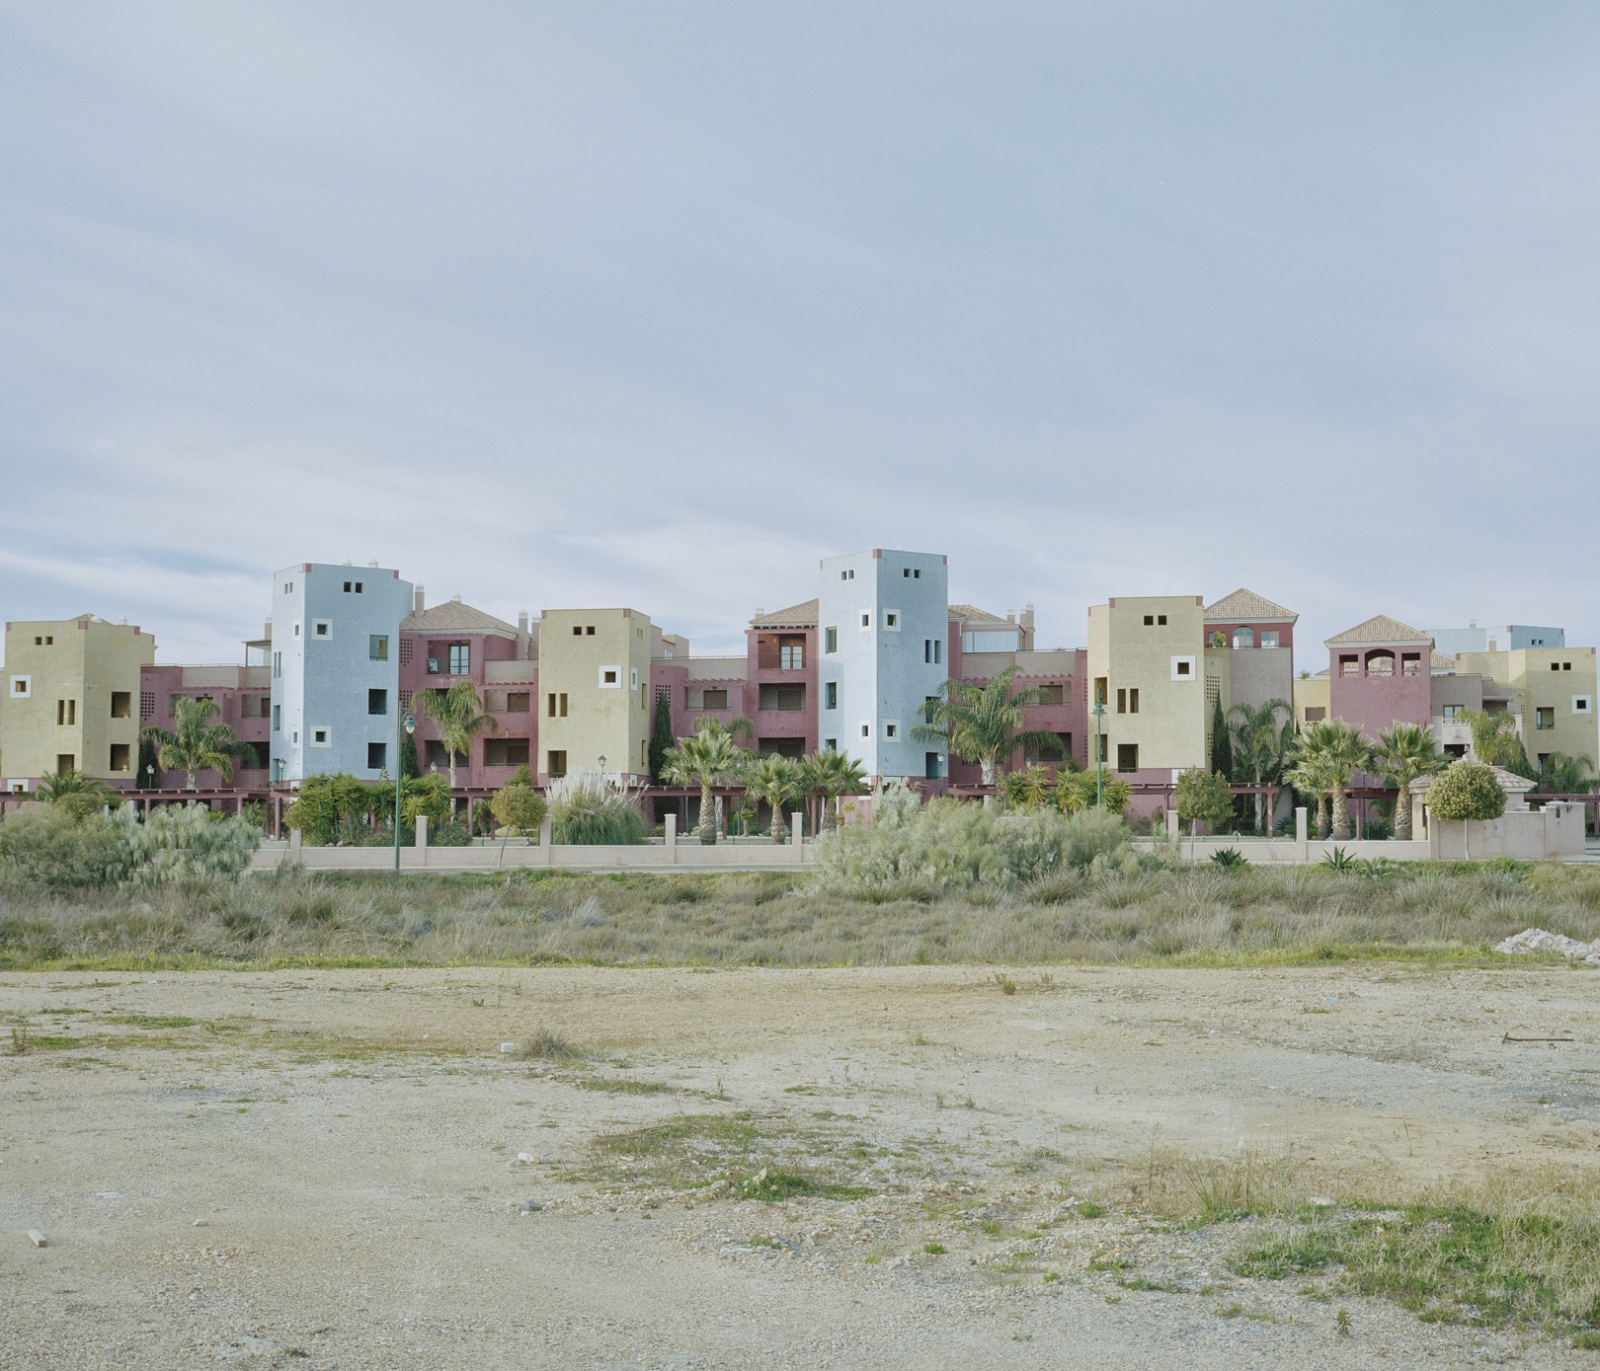 Spain, Ayamonte. Buildings on a beach of Ayamonte. Before the economical crisis Portugal and Spain strongly invest in civil construction, today several apartments built are empty while several buildings were left incomplete due to the lack of funding.